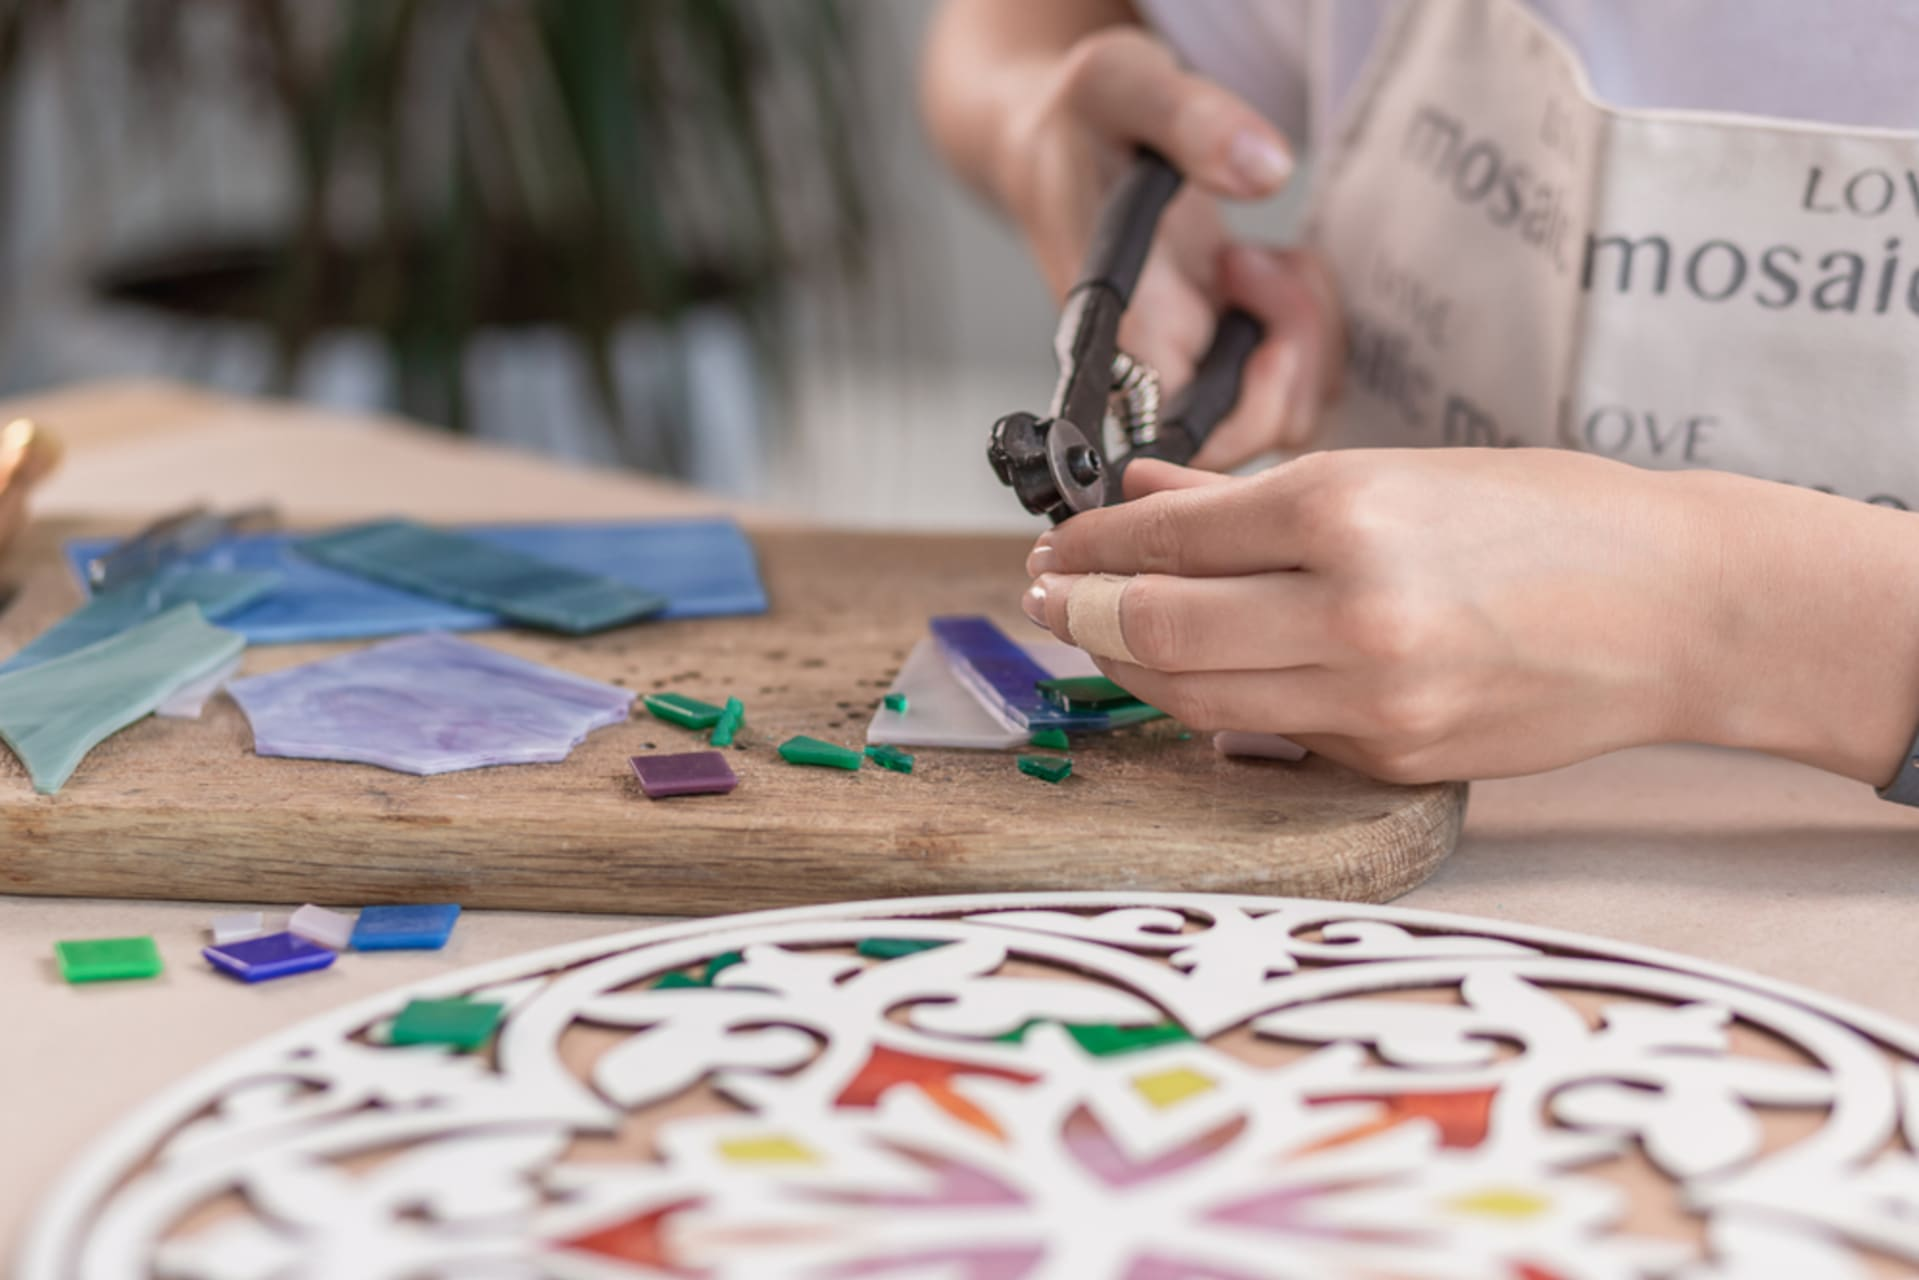 Ravenna - The art of making mosaics - visit to a mosaic workshop and artist's atelier in Ravenna, the Capital of Mosaics.